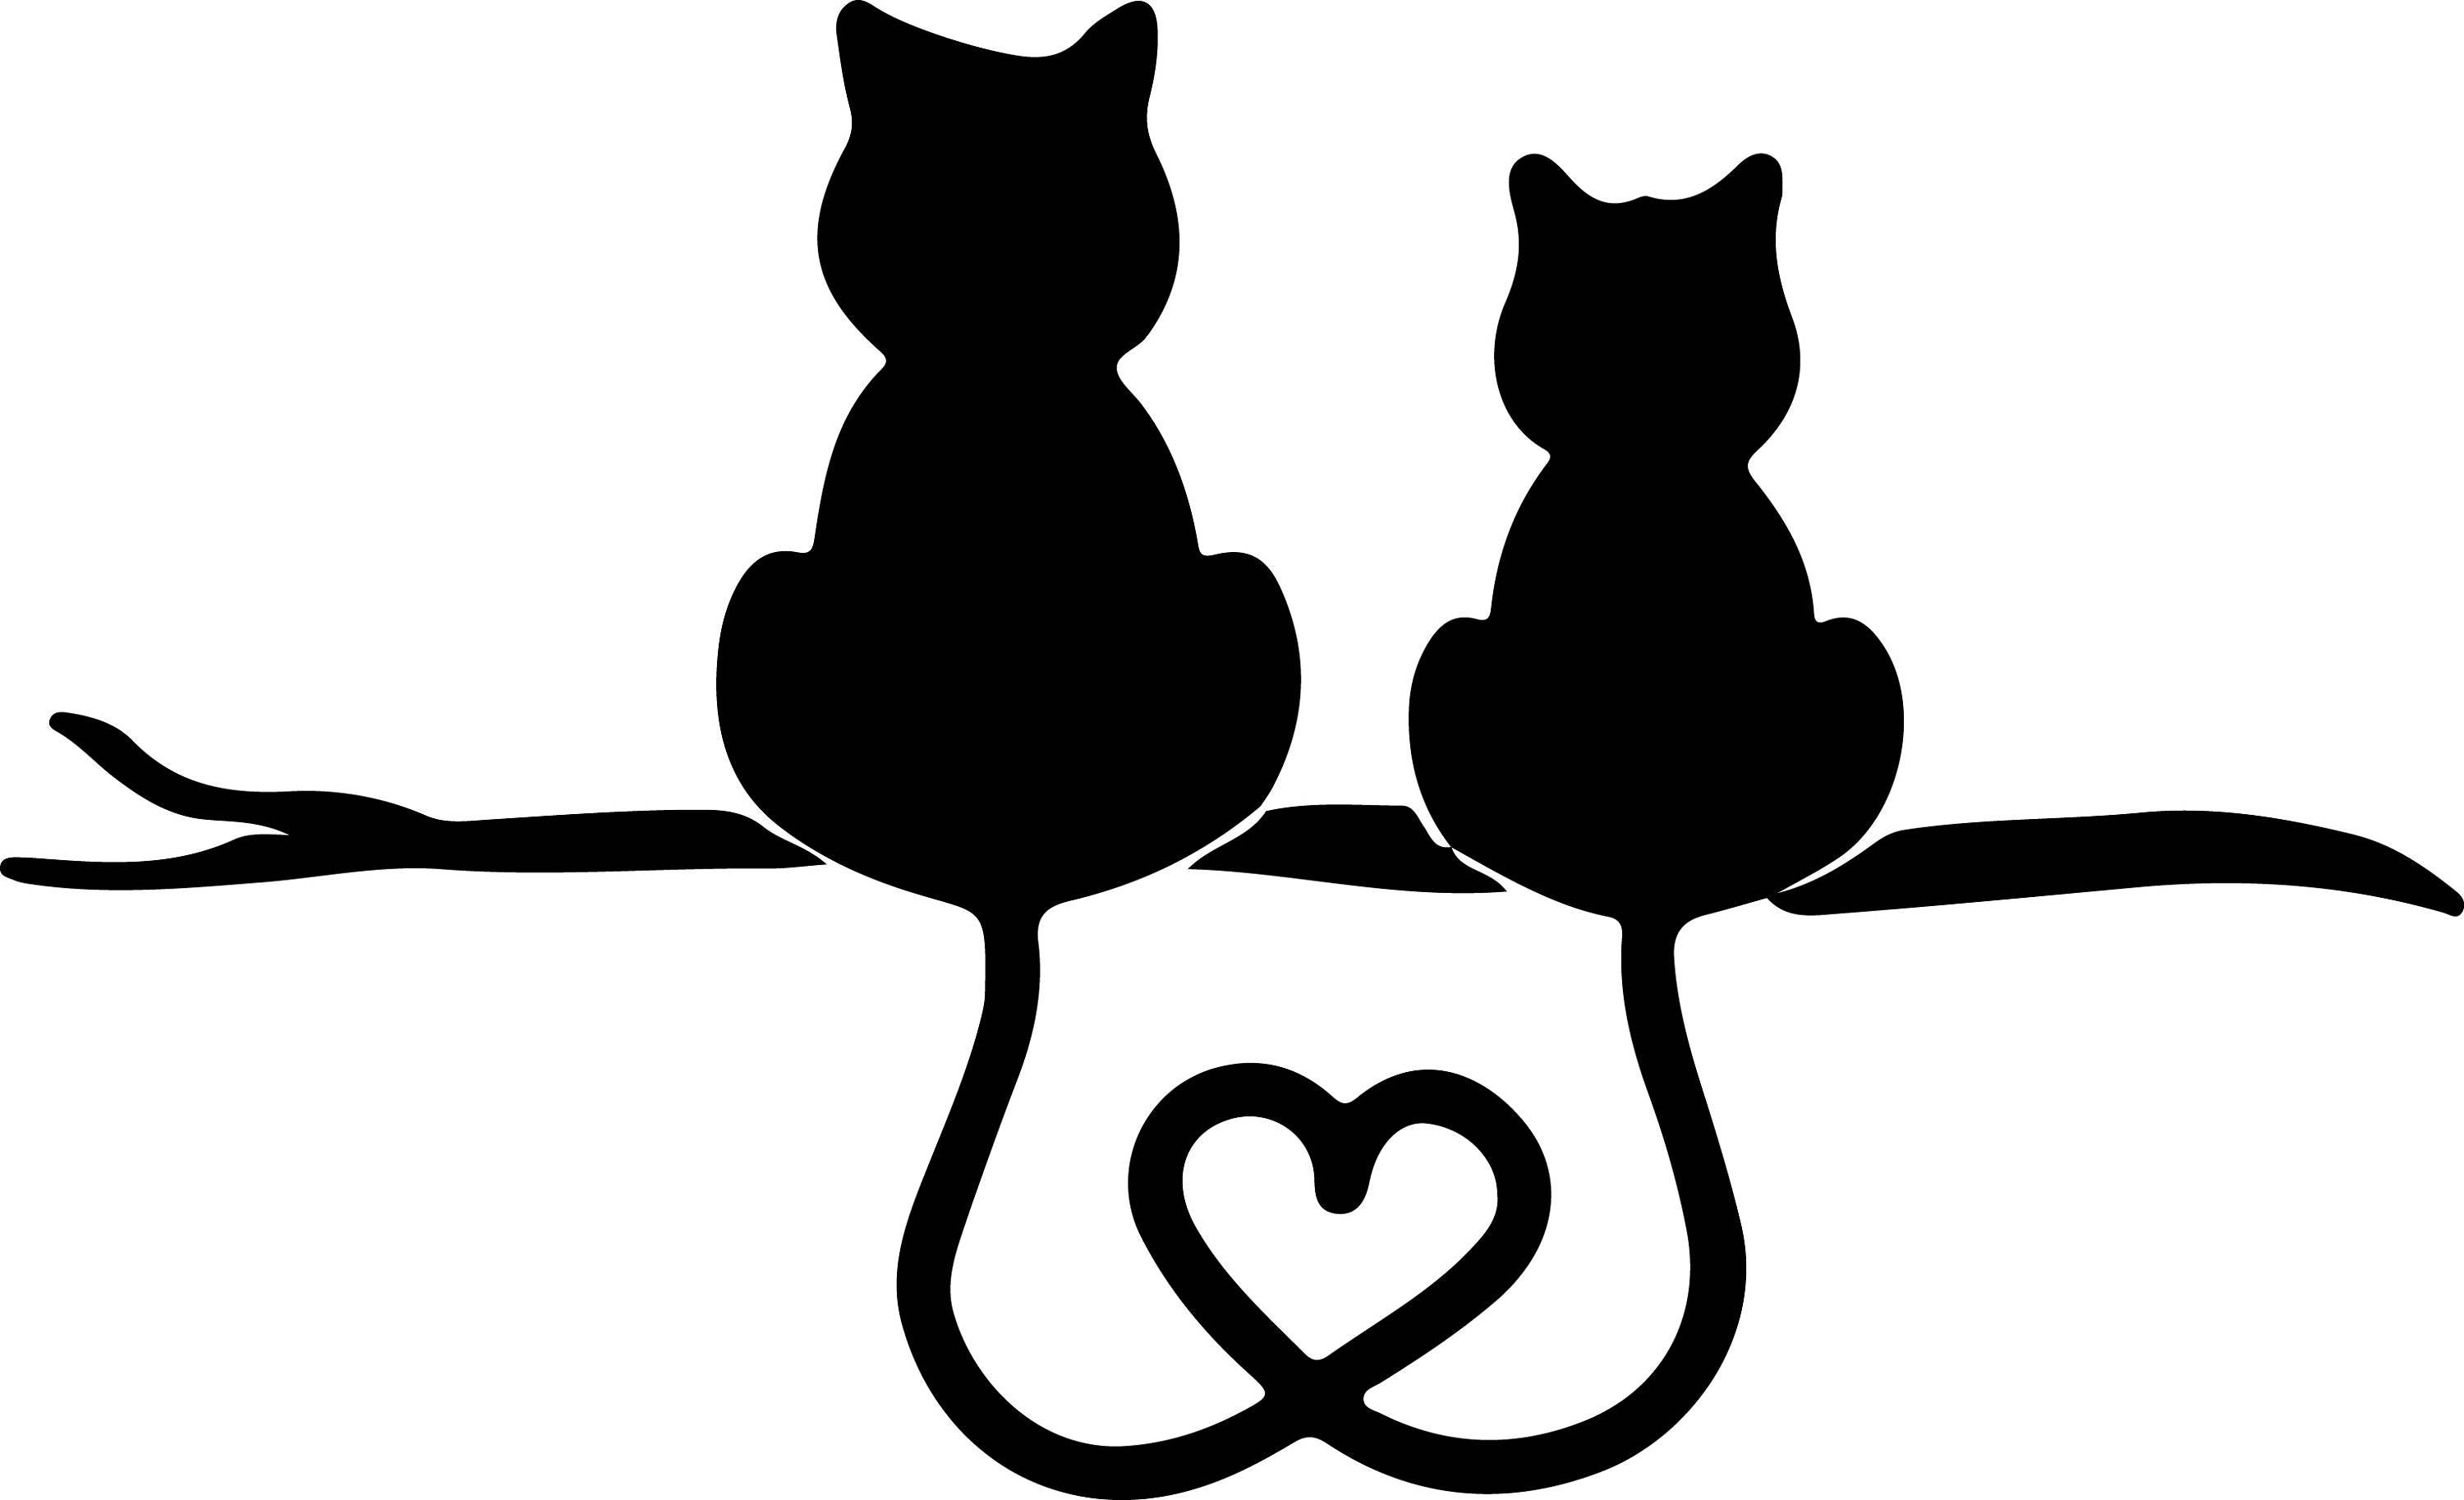 Download Love Svg Files Silhouettes Dxf Files Cutting files Cricut